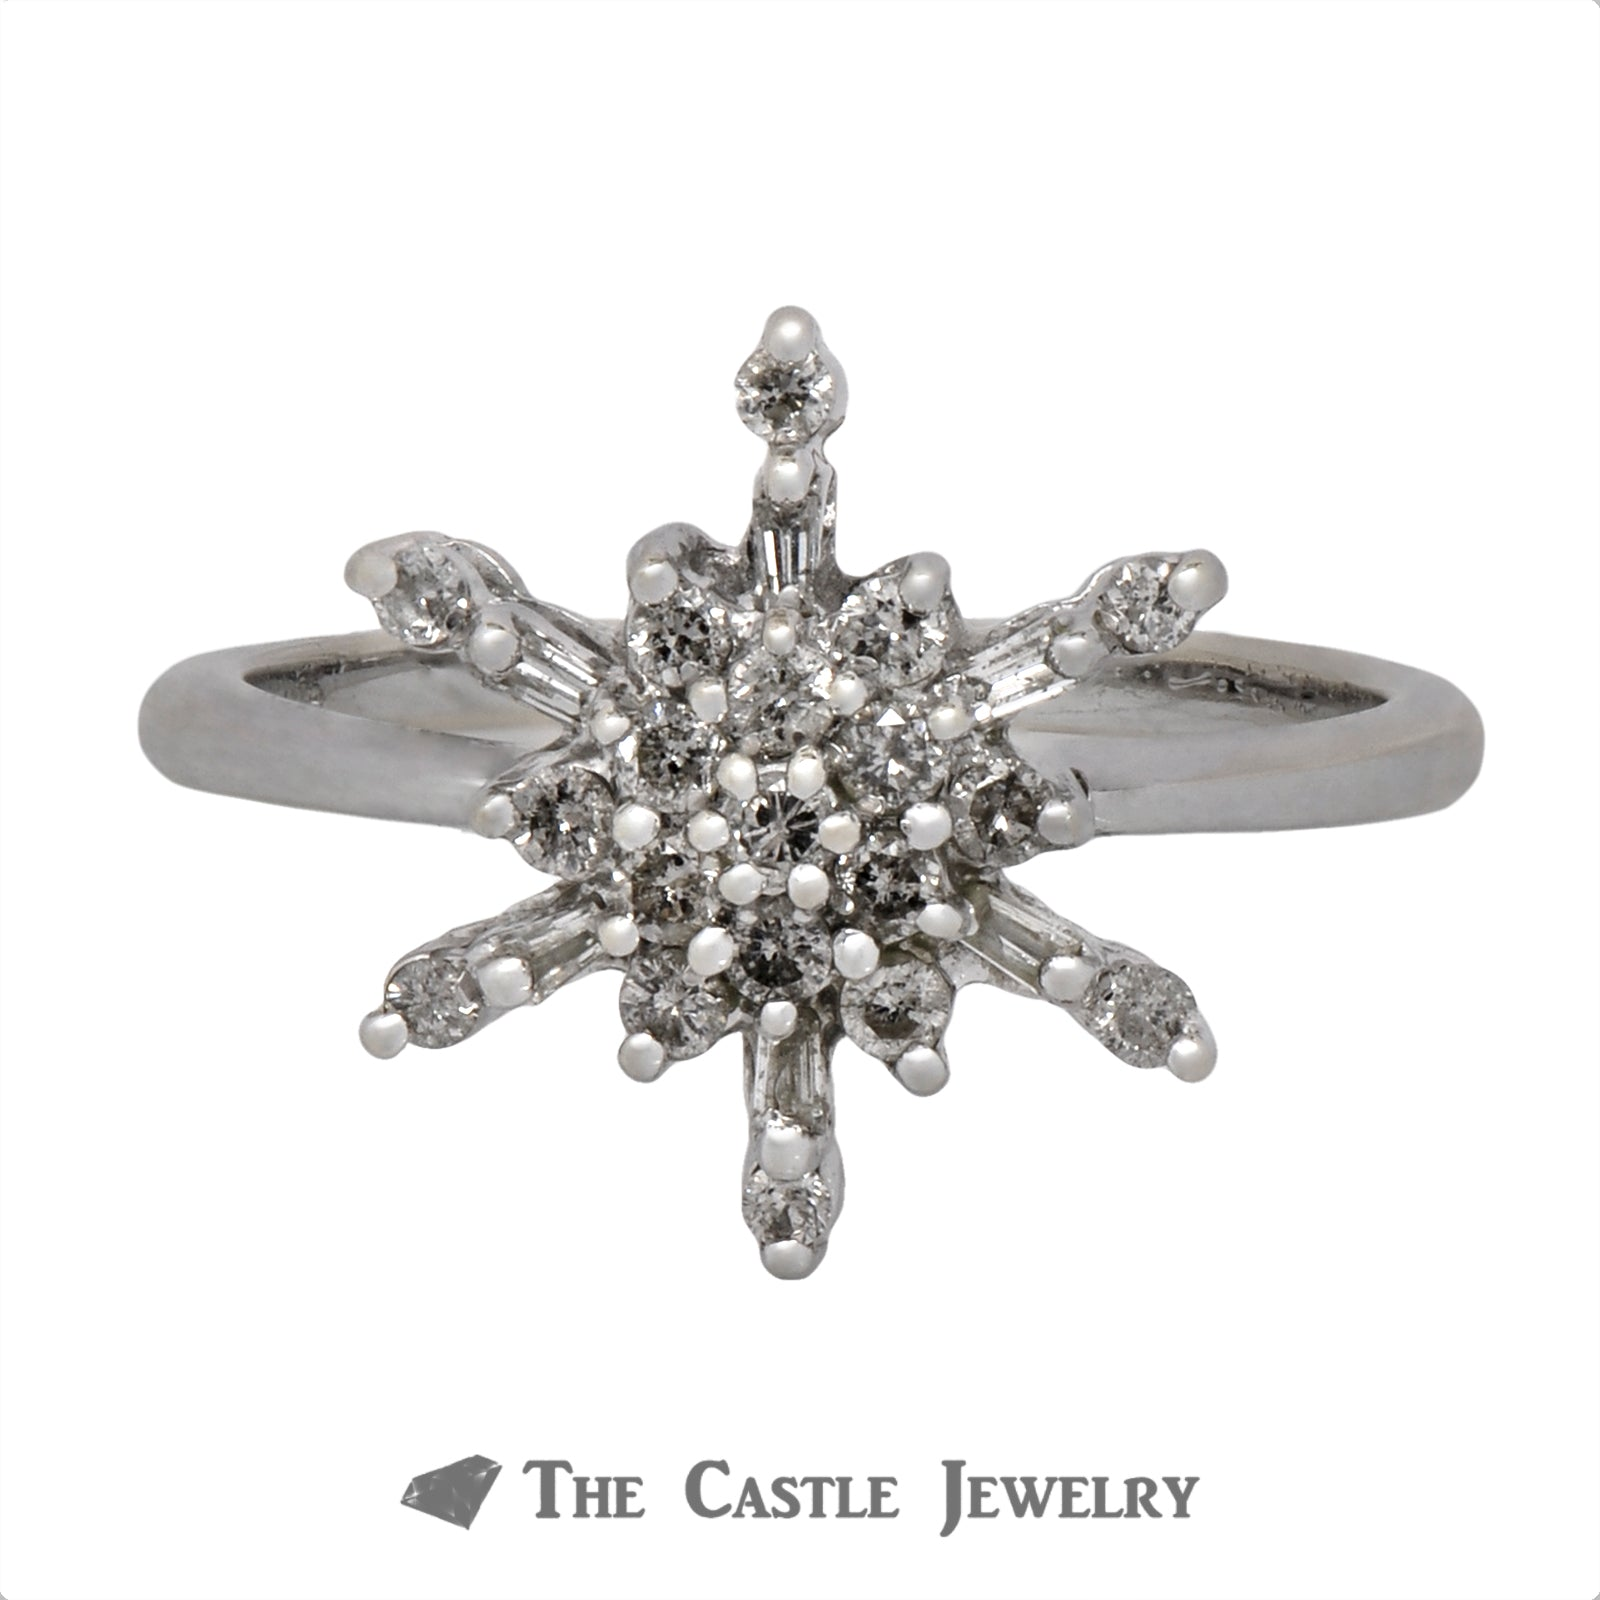 Diamond Cluster in Snowflake Design Crafted in 14k White Gold-0